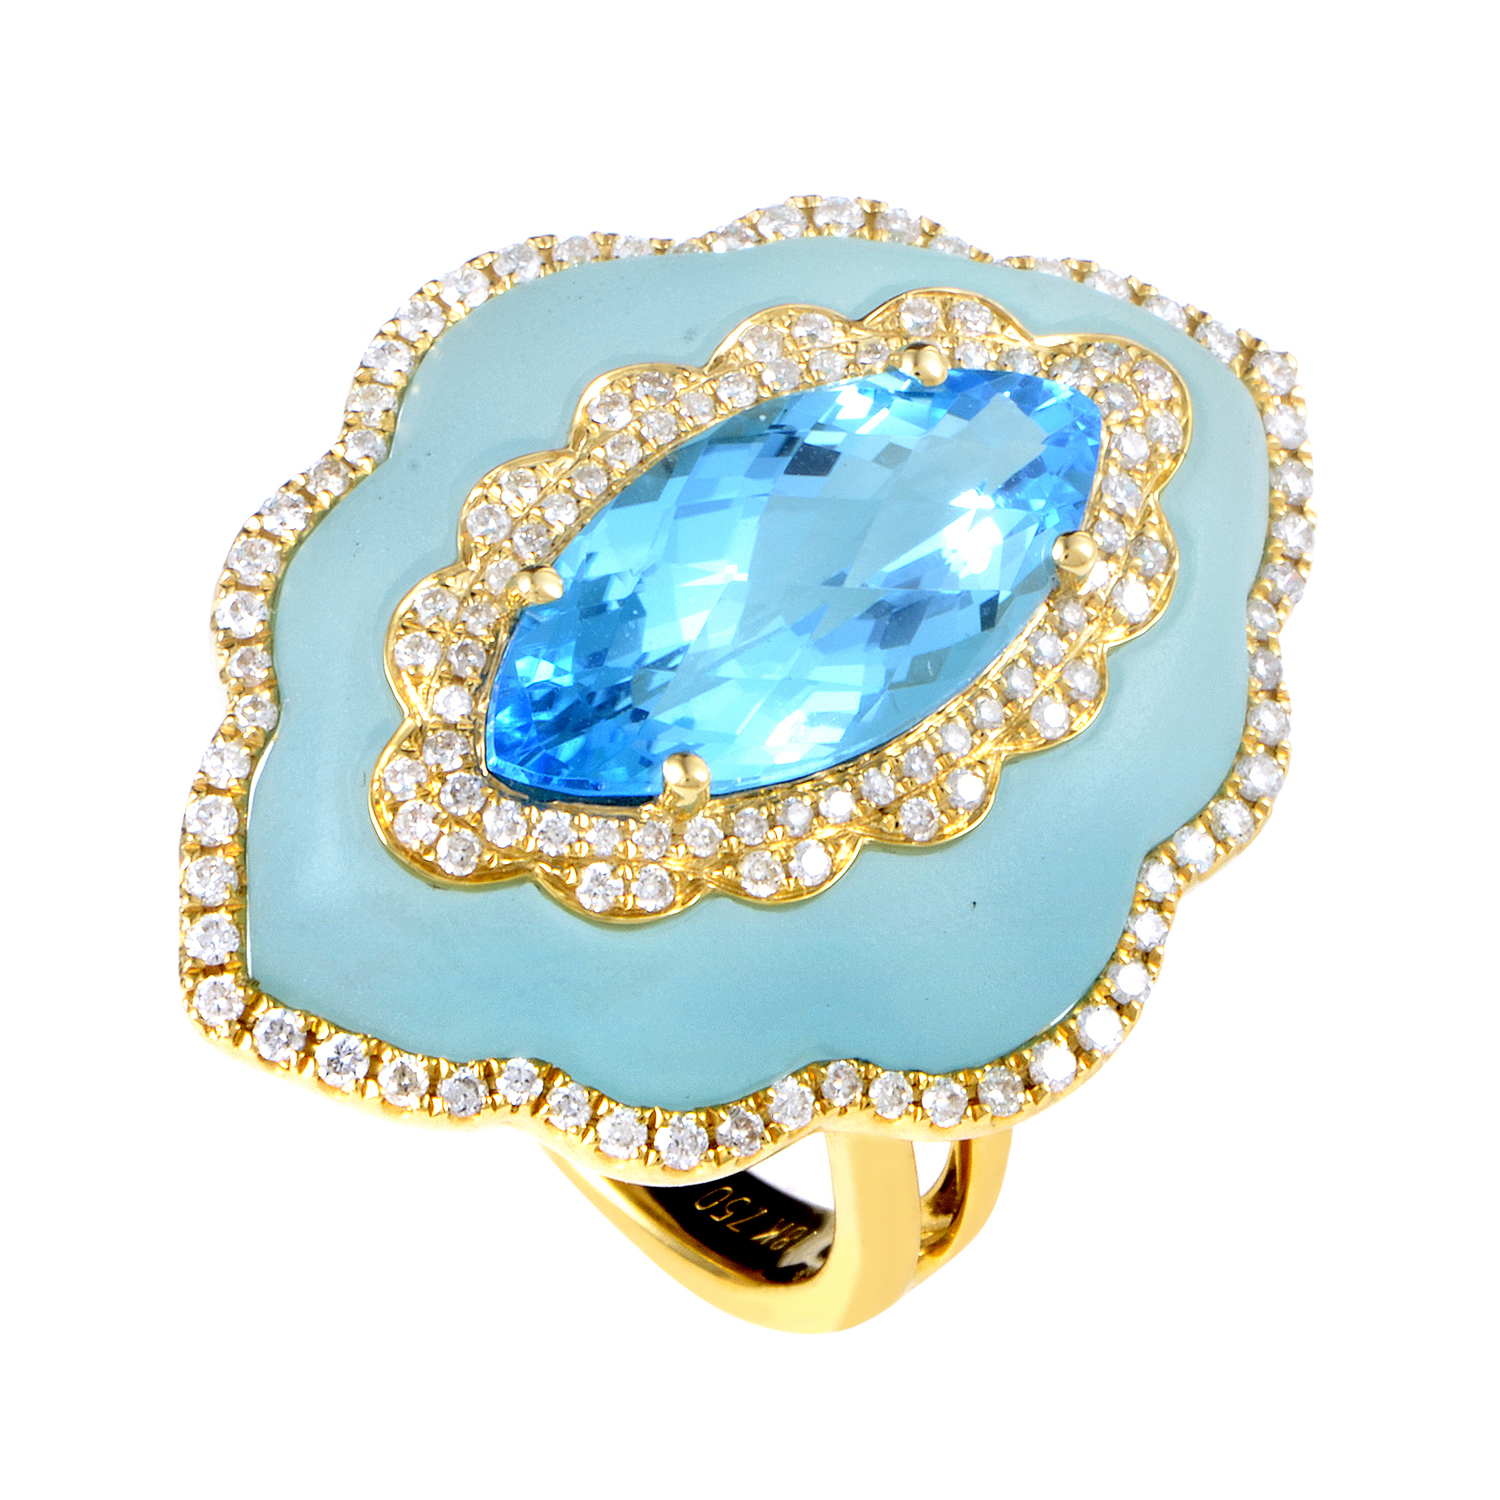 Women's 18K Yellow Gold Diamond & Blue Gemstone Ring KO79451RMZZTO